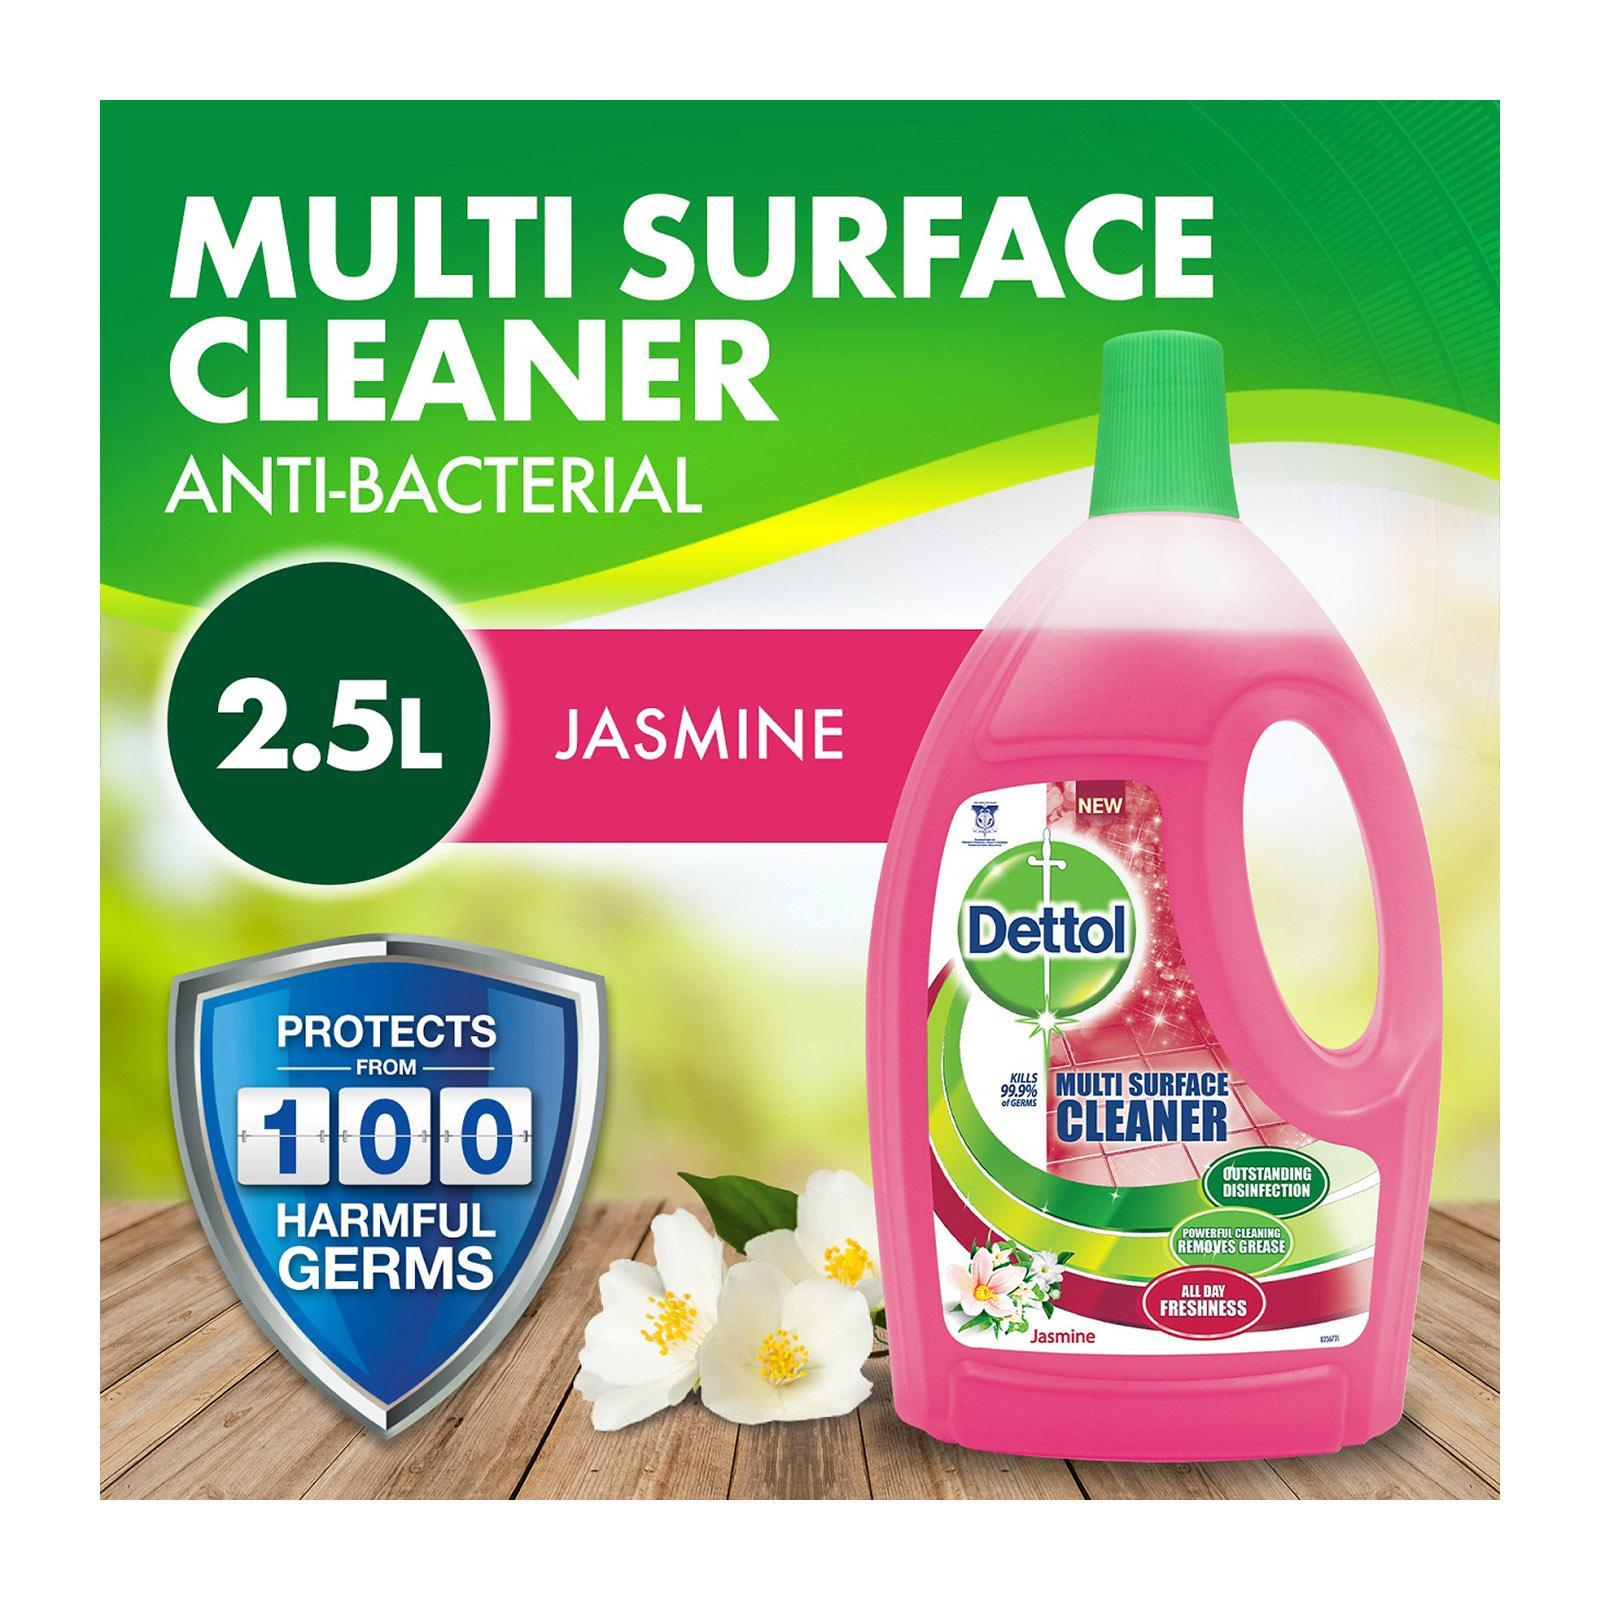 Dettol 4 In 1 Jasmine Disinfectant Multi Action Cleaner